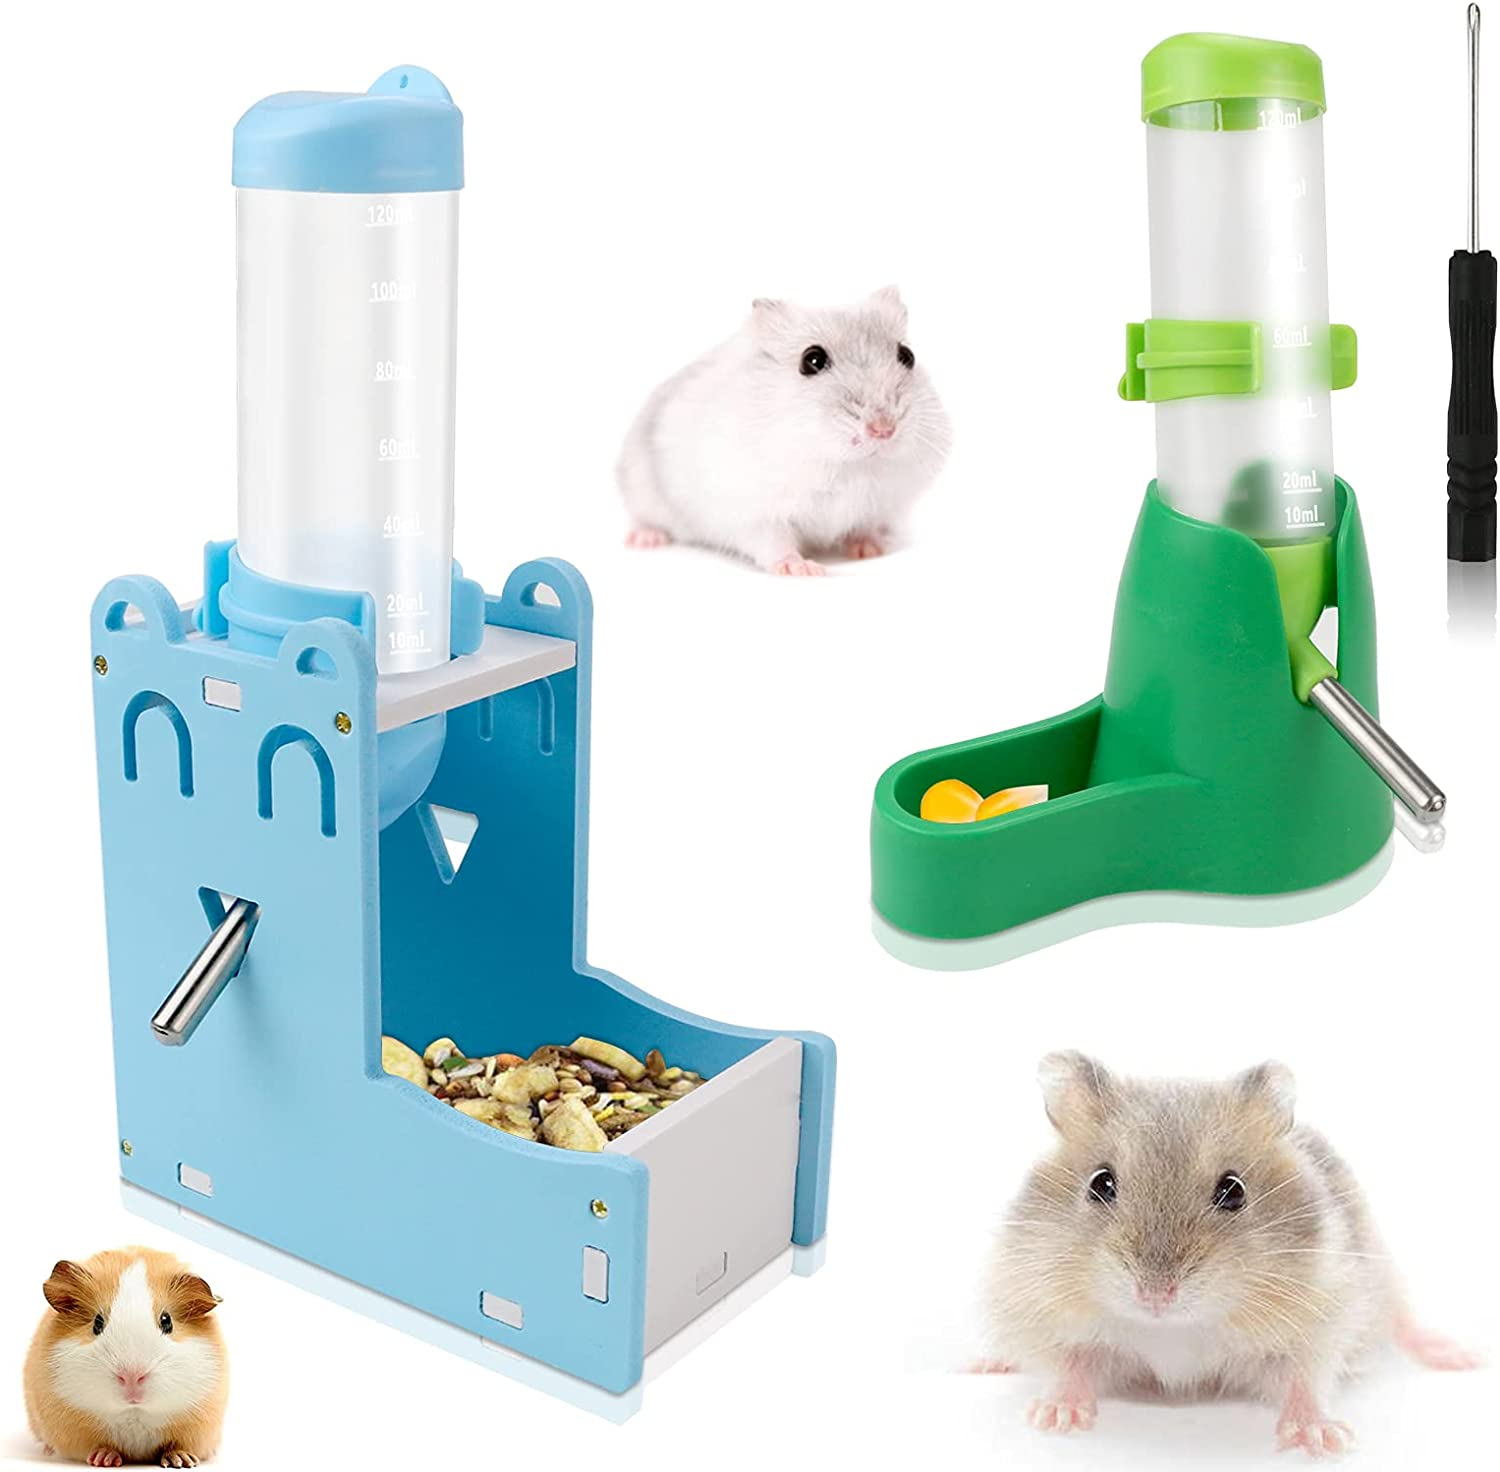 Oruuum 4 PCS Small Pet Automatic Drinking Bottle with Base Set, 2 Pieces 125ml/4oz Hamster Water Bottle, 2 Pieces Food Container Base for Hamster Rat Gerbil Guinea Pig(Blue and Green)